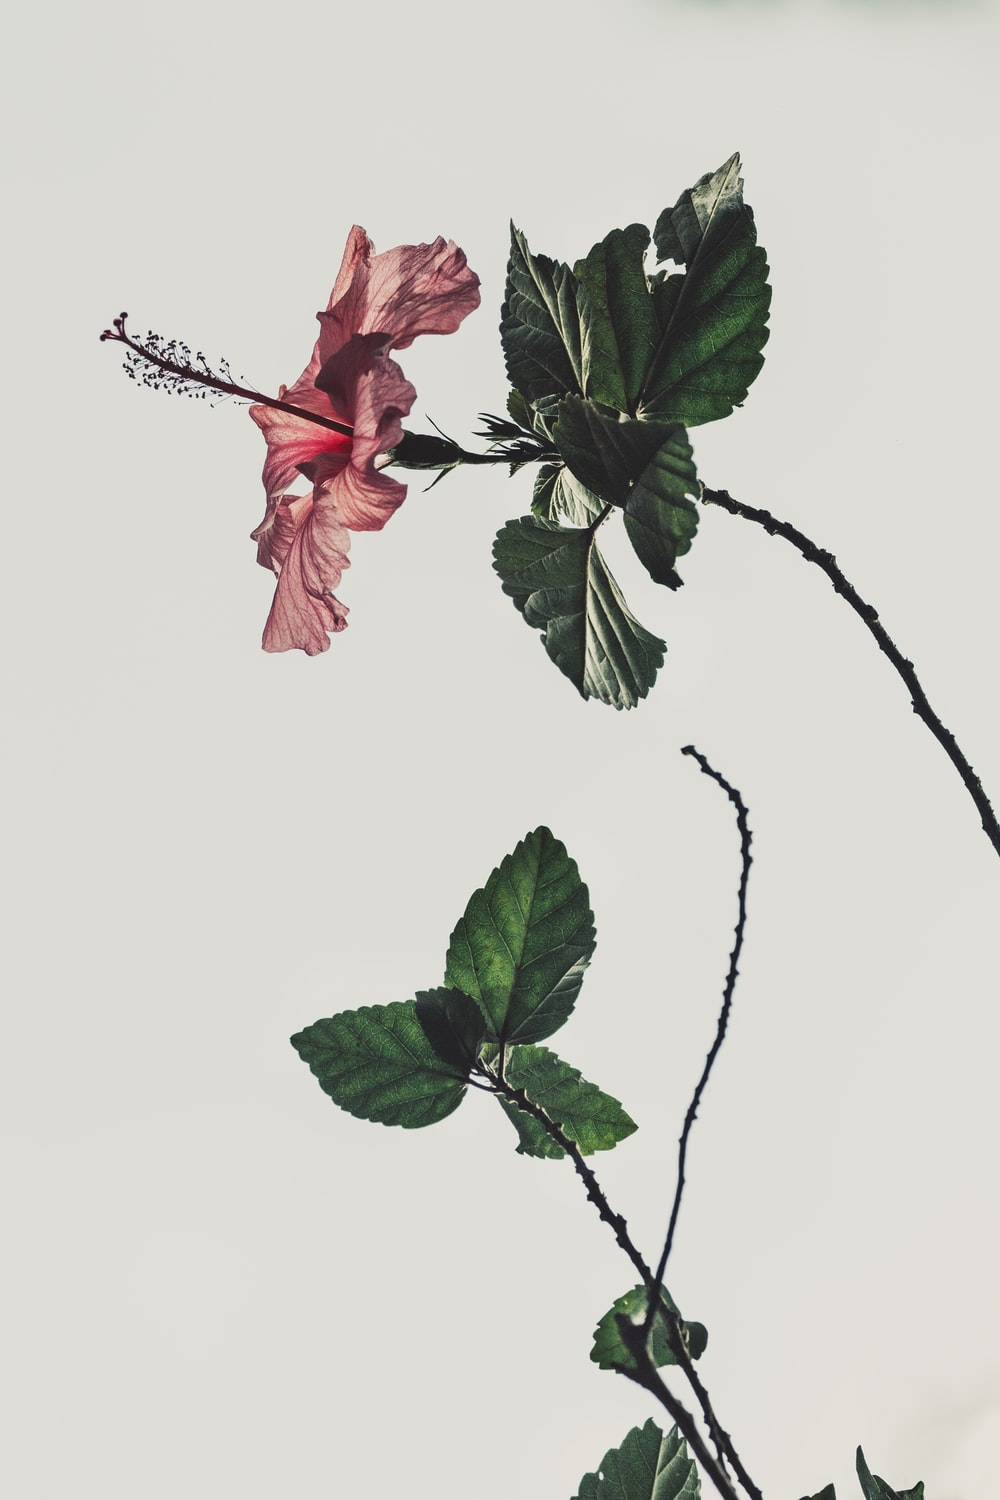 Flowers Aesthetic Pictures Download Free Images On Unsplash